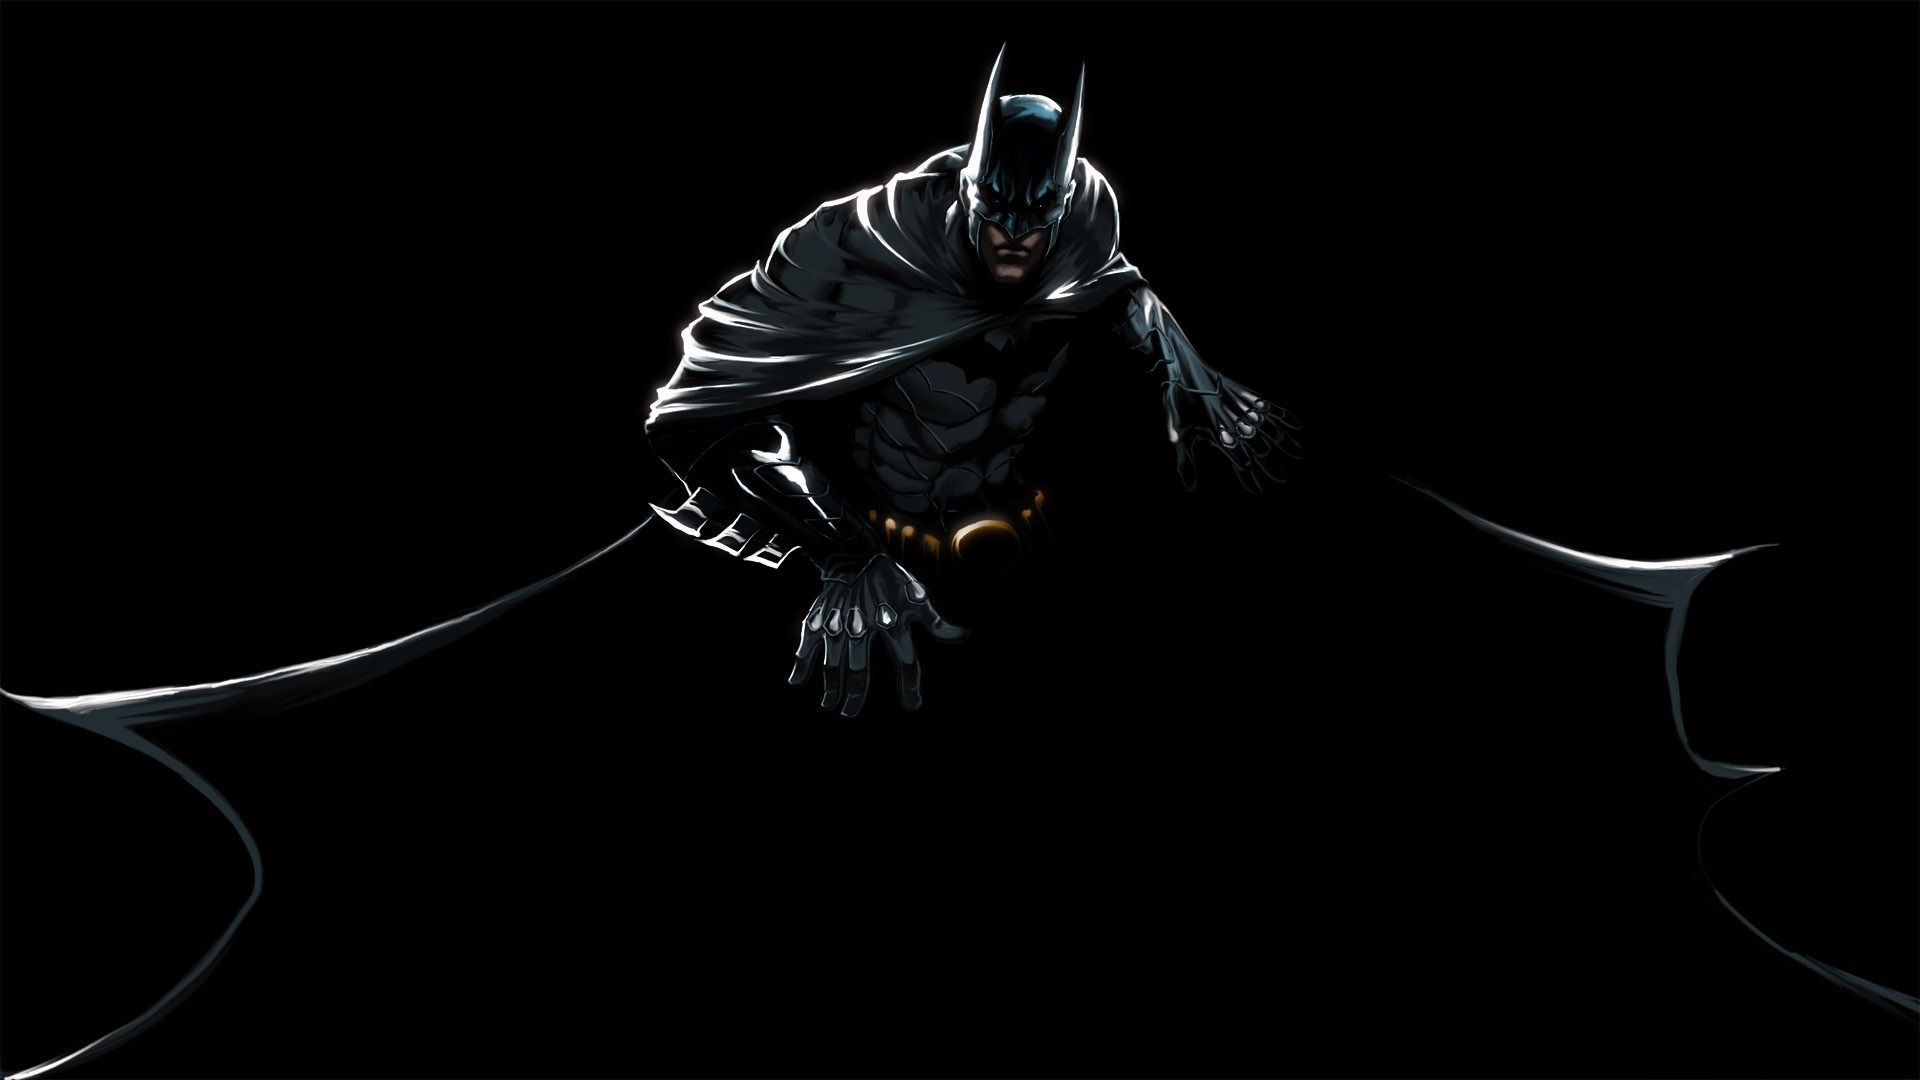 Fantastic Wallpaper Macbook Batman - batman-background-wallpaper-3  Image_1002953.jpg